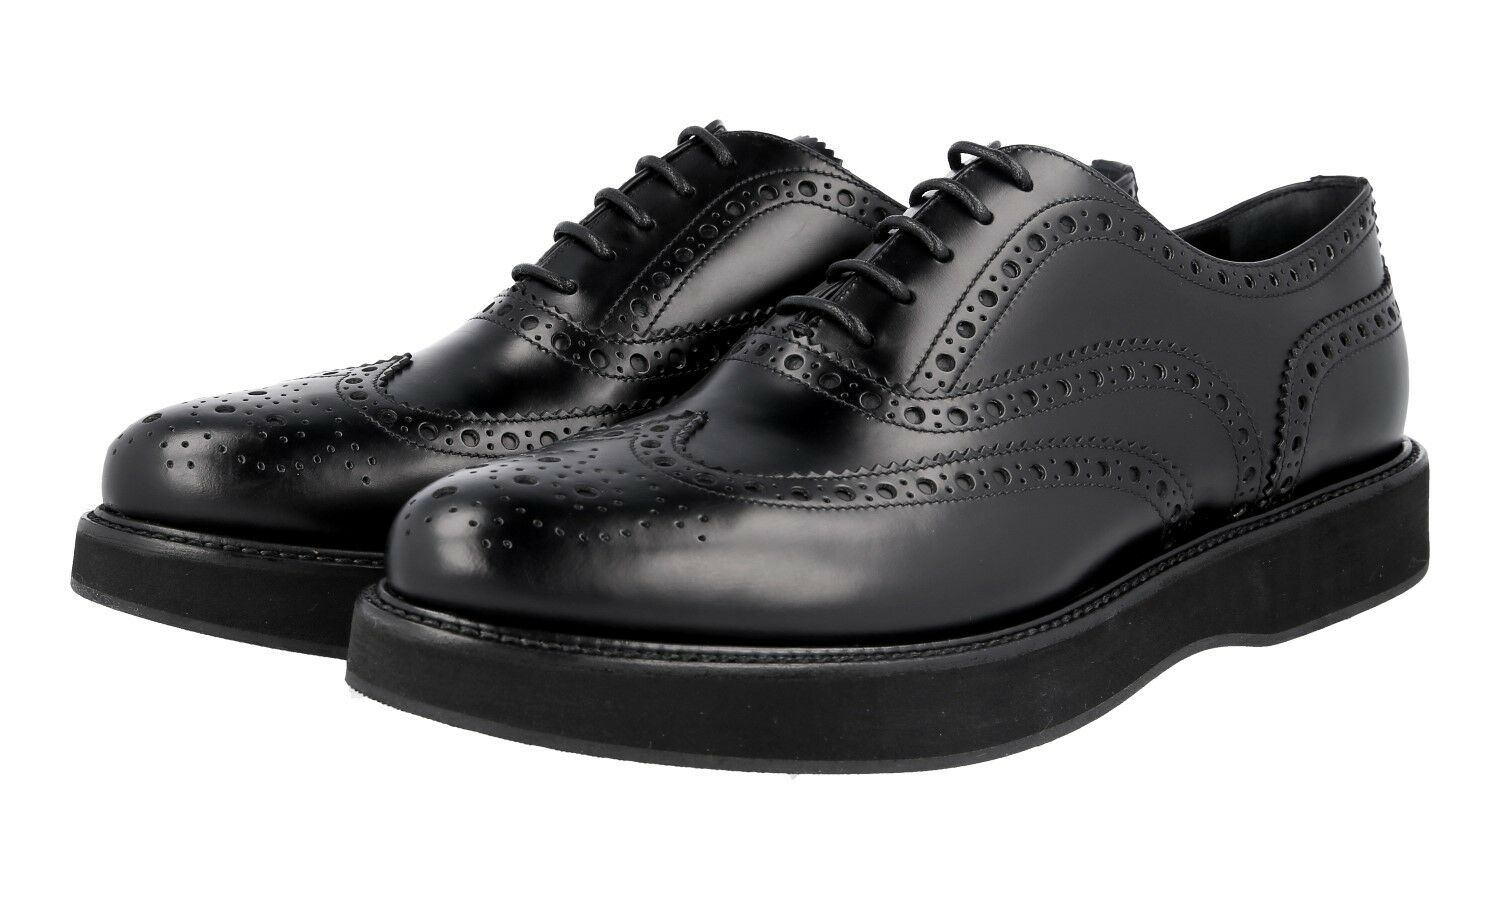 zapatos CHURCH'S LUXUEUX A740219 negro NOUVEAUX 40 40,5 UK 7